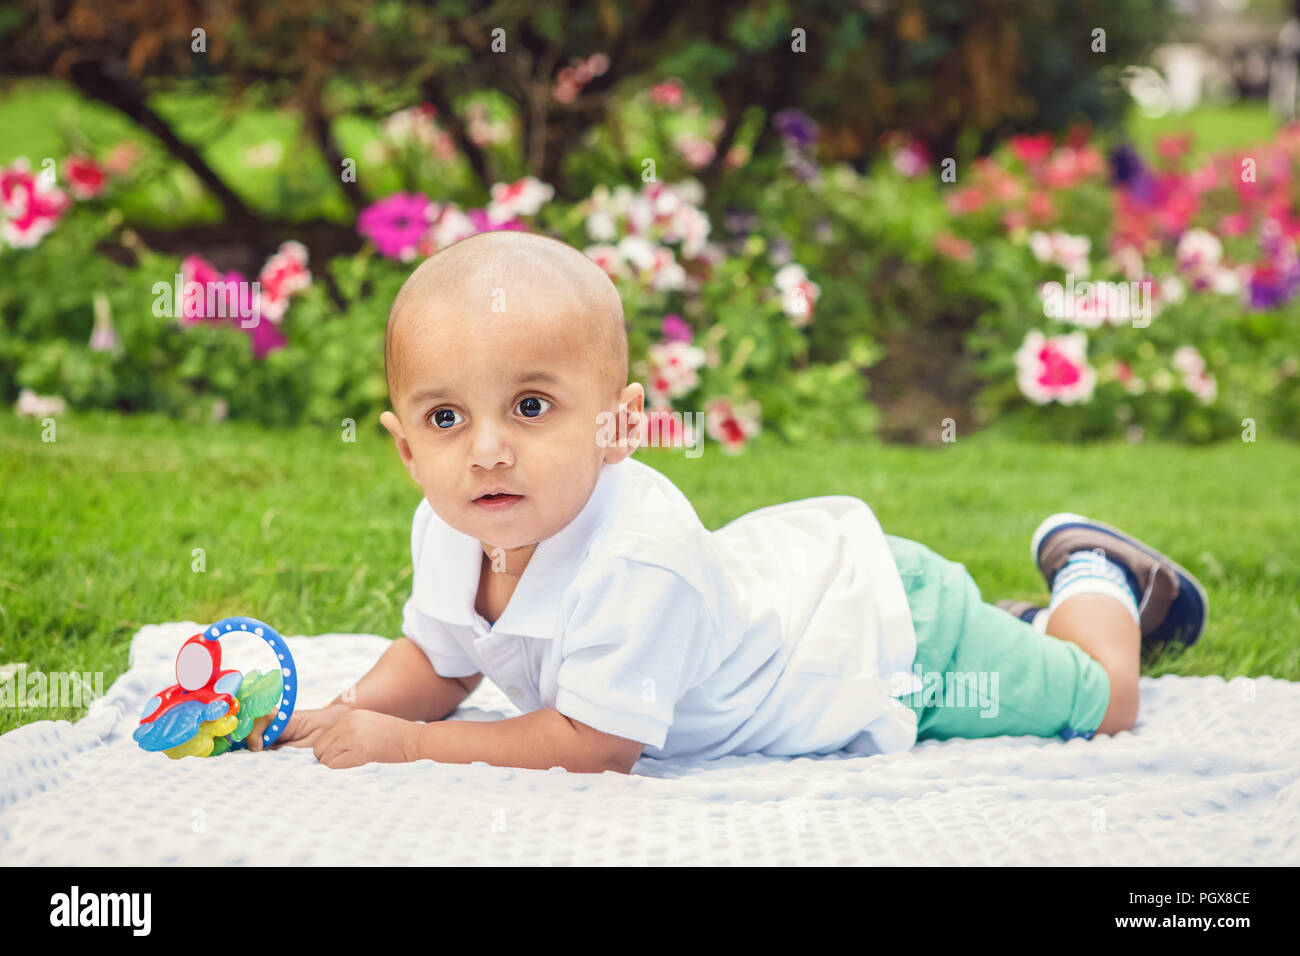 Portrait of cute adorable little indian South Asian or Middle Eastern infant boy in white shirt laying on ground with toys in park outside on bright s Stock Photo